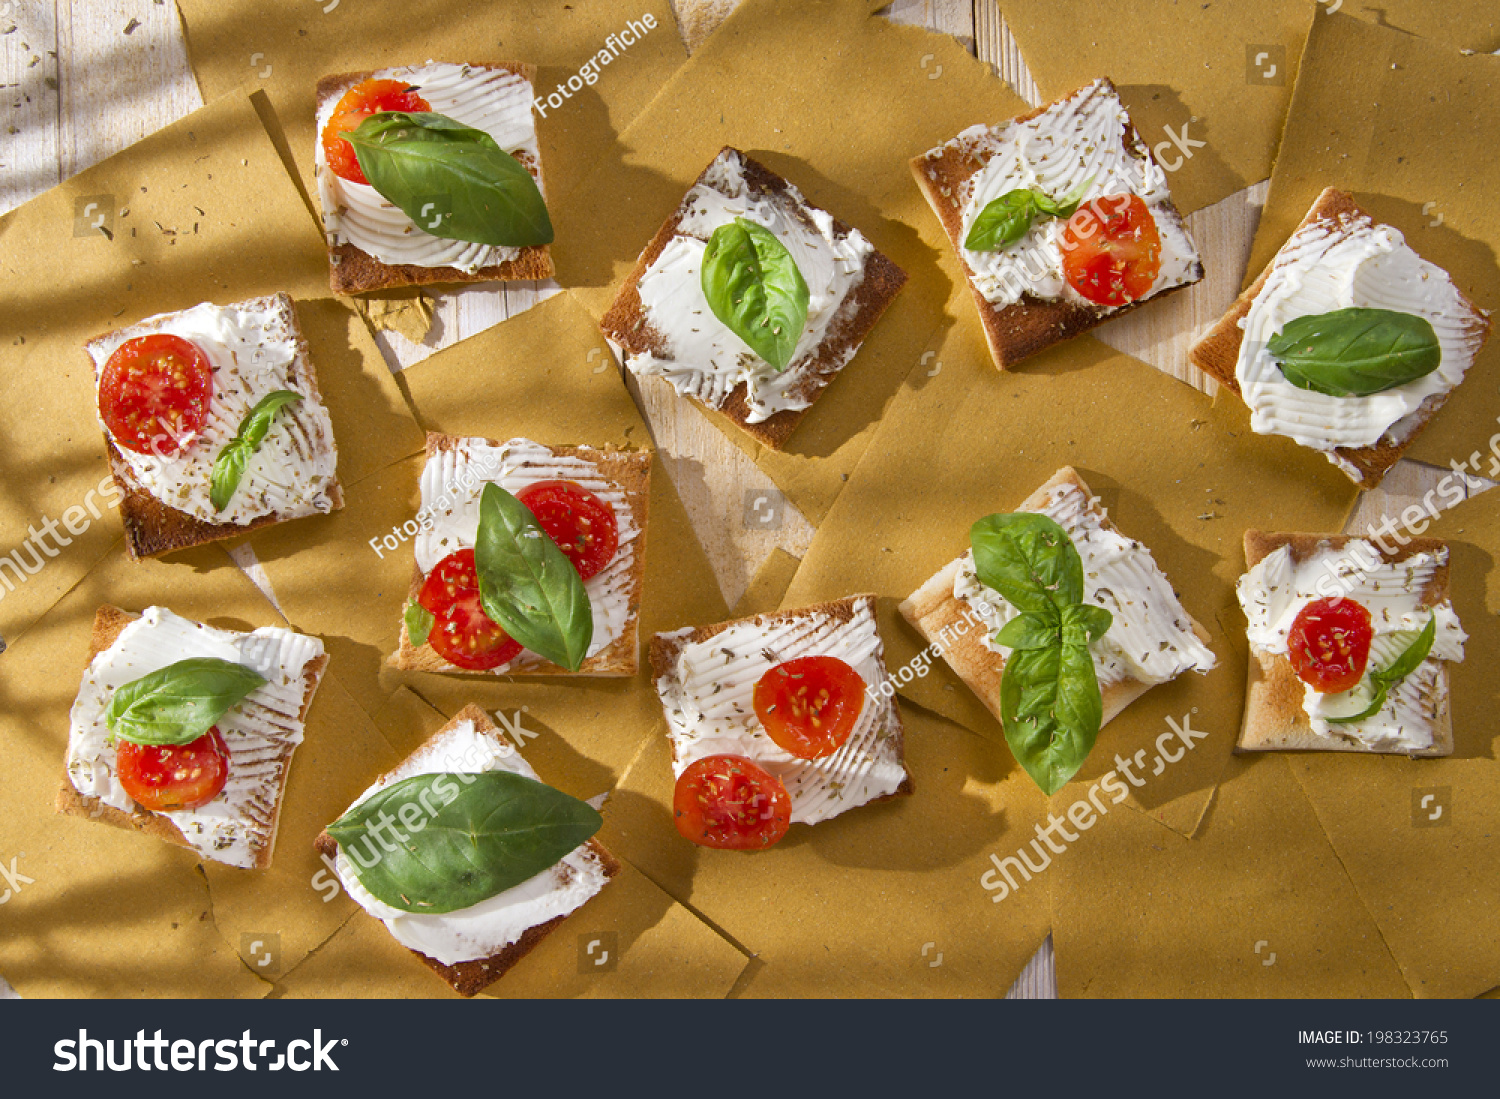 Canapés Wraps Tricolor Cocktail Canapes Cheese Tomato Salad Stock Photo Edit